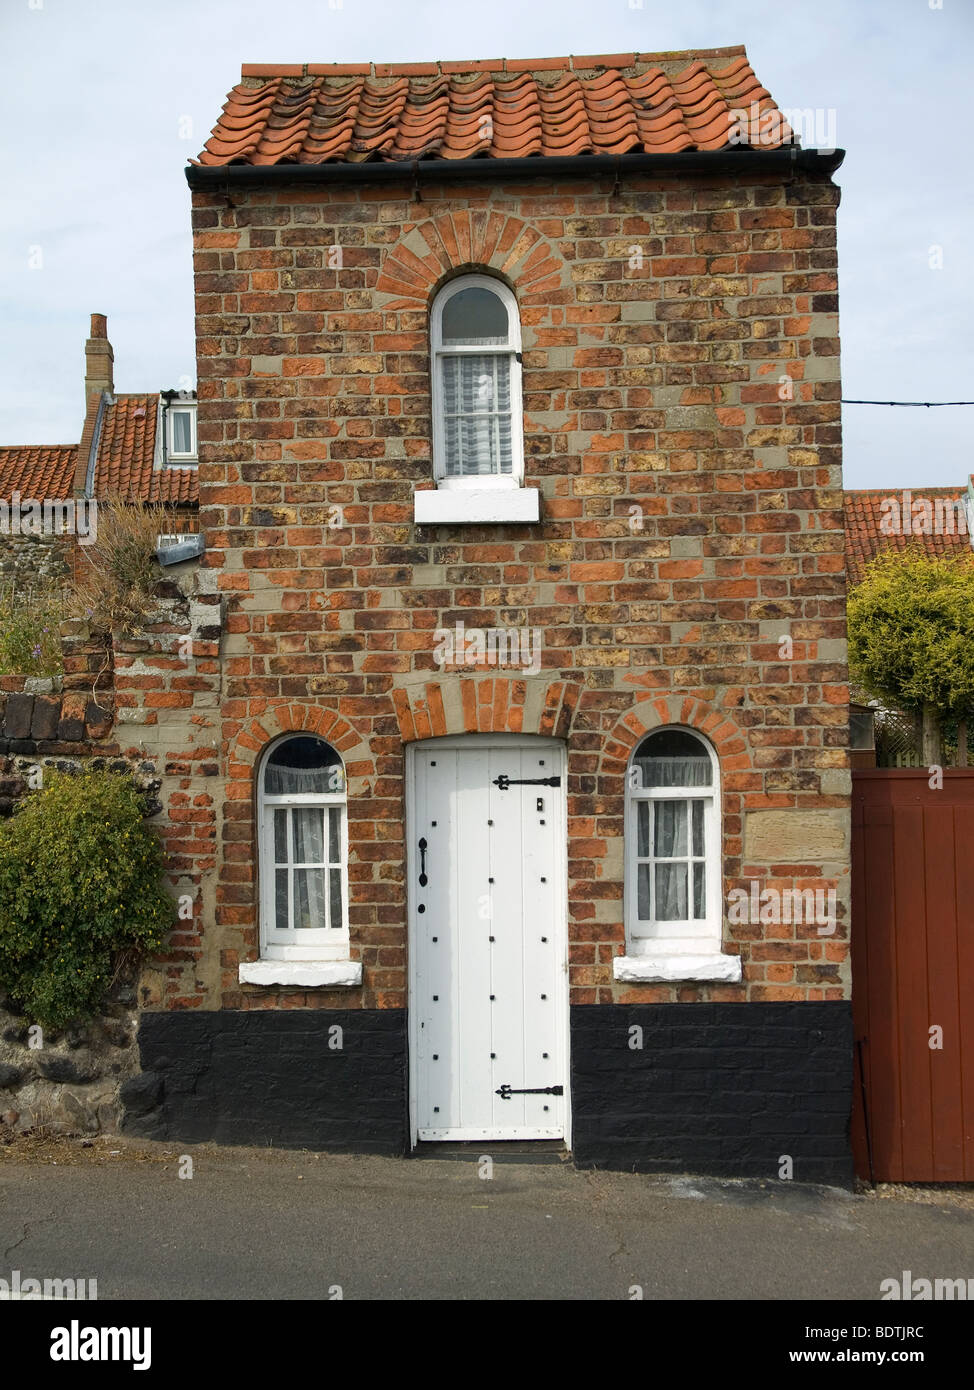 A tiny detached brick house in wells next the sea north norfolk stock photo royalty free image - Small belgian houses brick ...